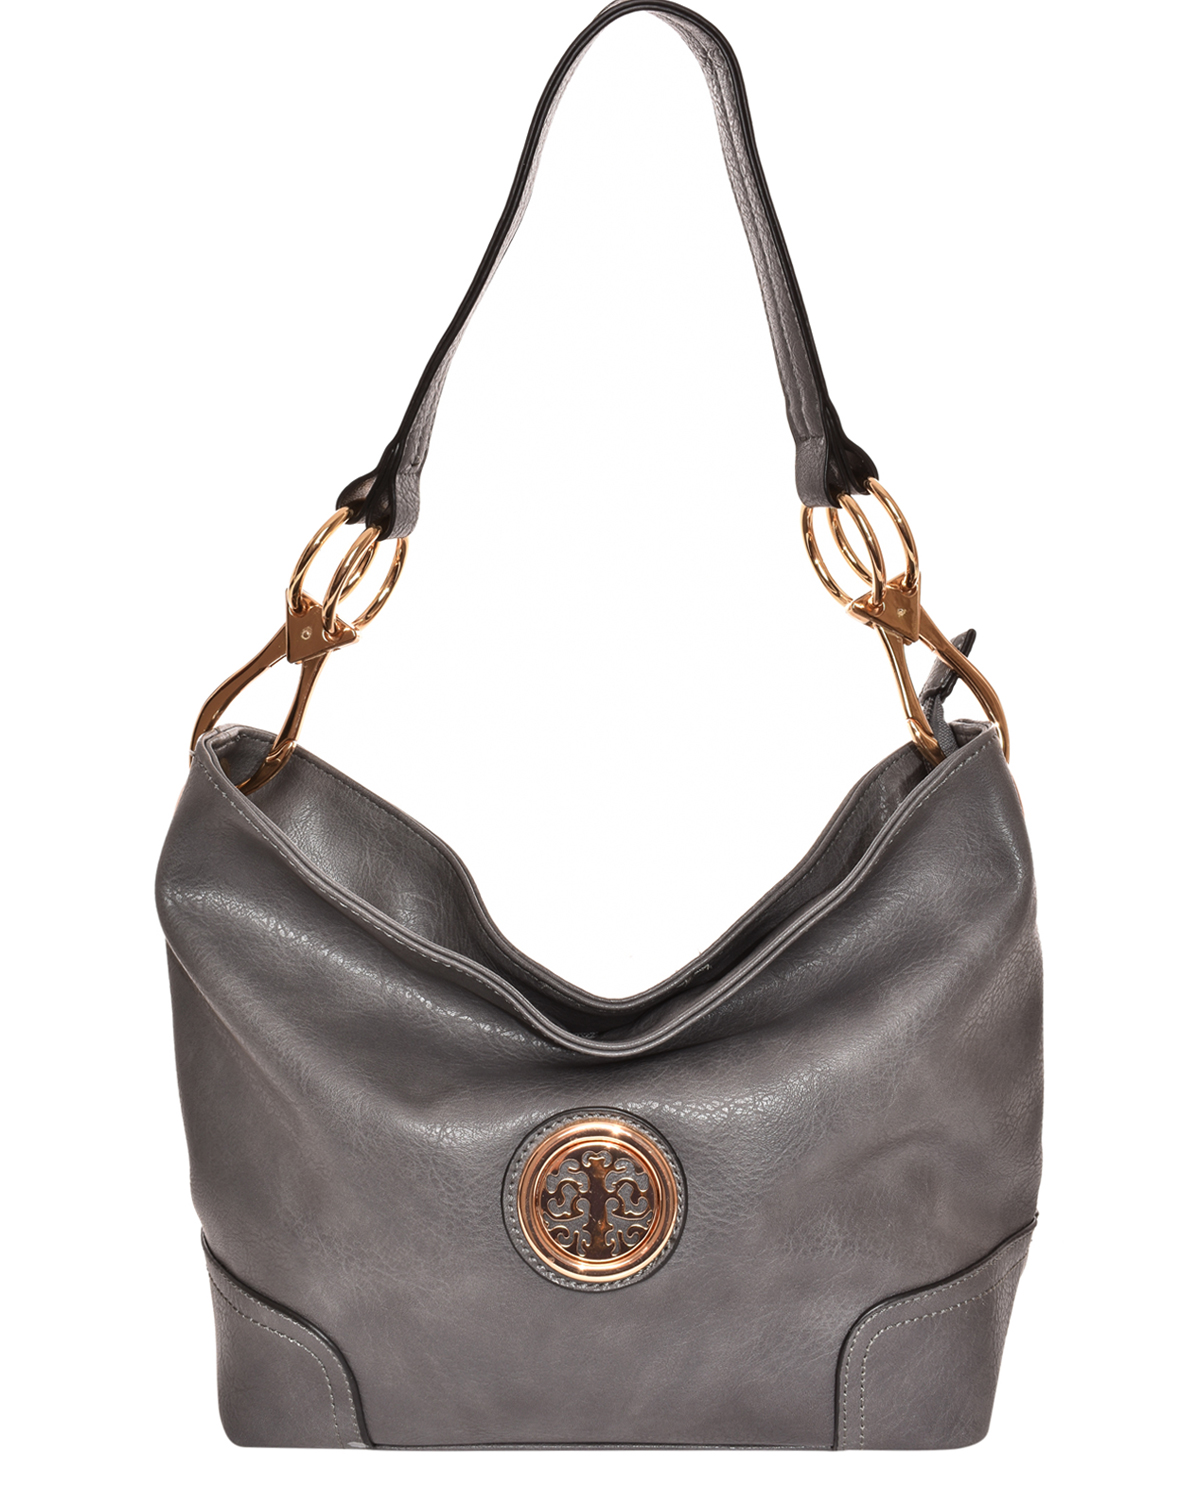 HB3134M(GY)-wholesale-handbag-faux-leatherette-hobo-gold-metal-emblem-link-lobster-claw-clasp-solid-fashion(0).jpg